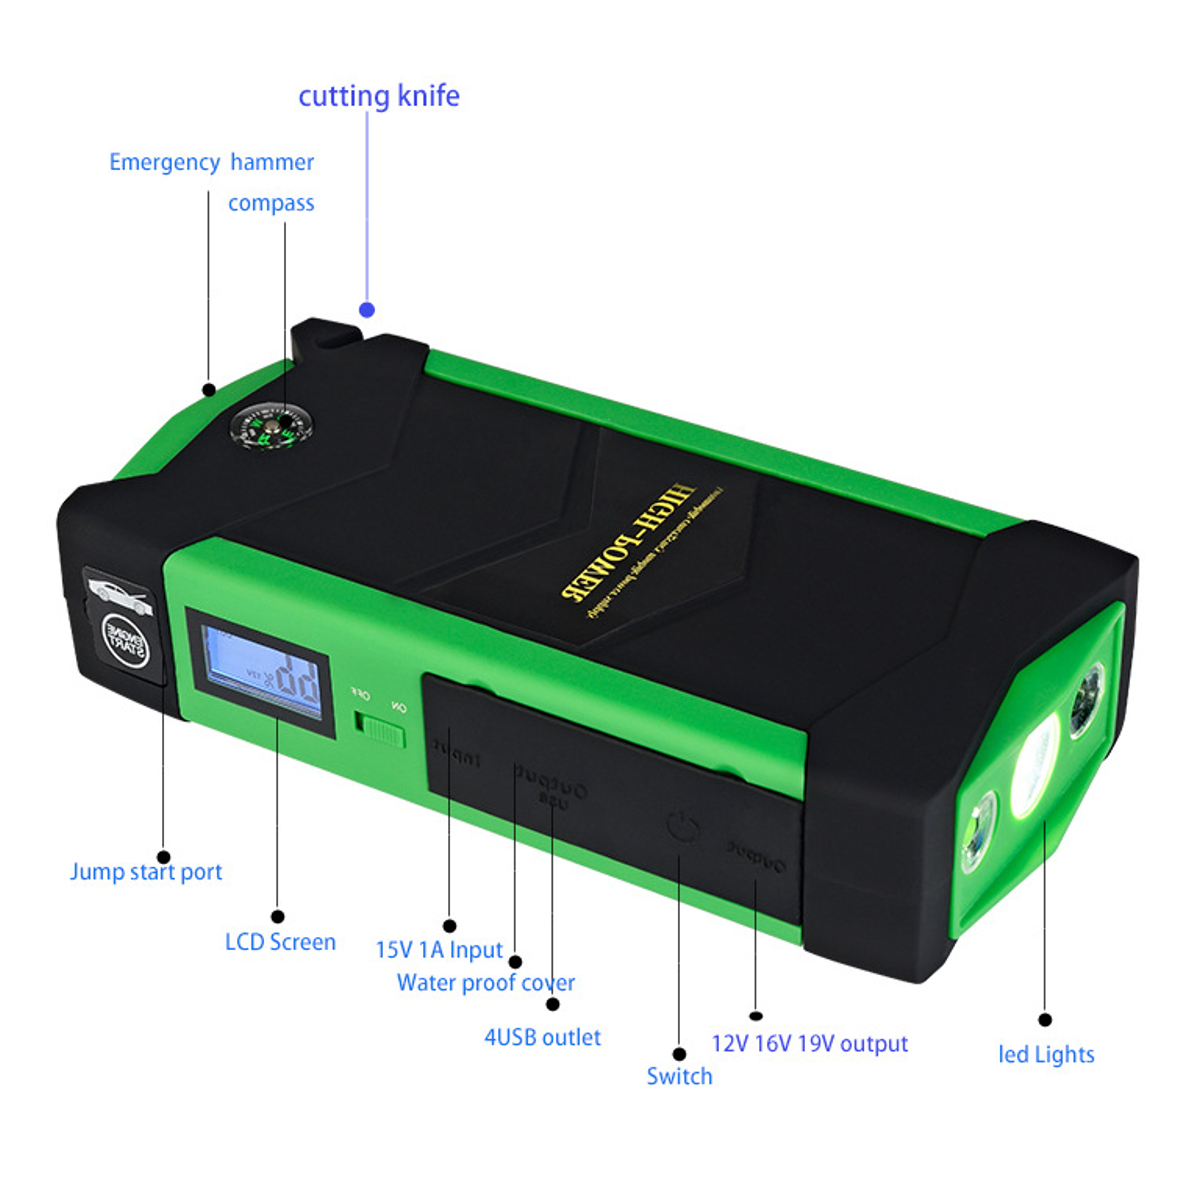 600A 82800mAh Multifunctional Portable Power Bank Battery Charger for Phone/Laptop/MP3/Lightings